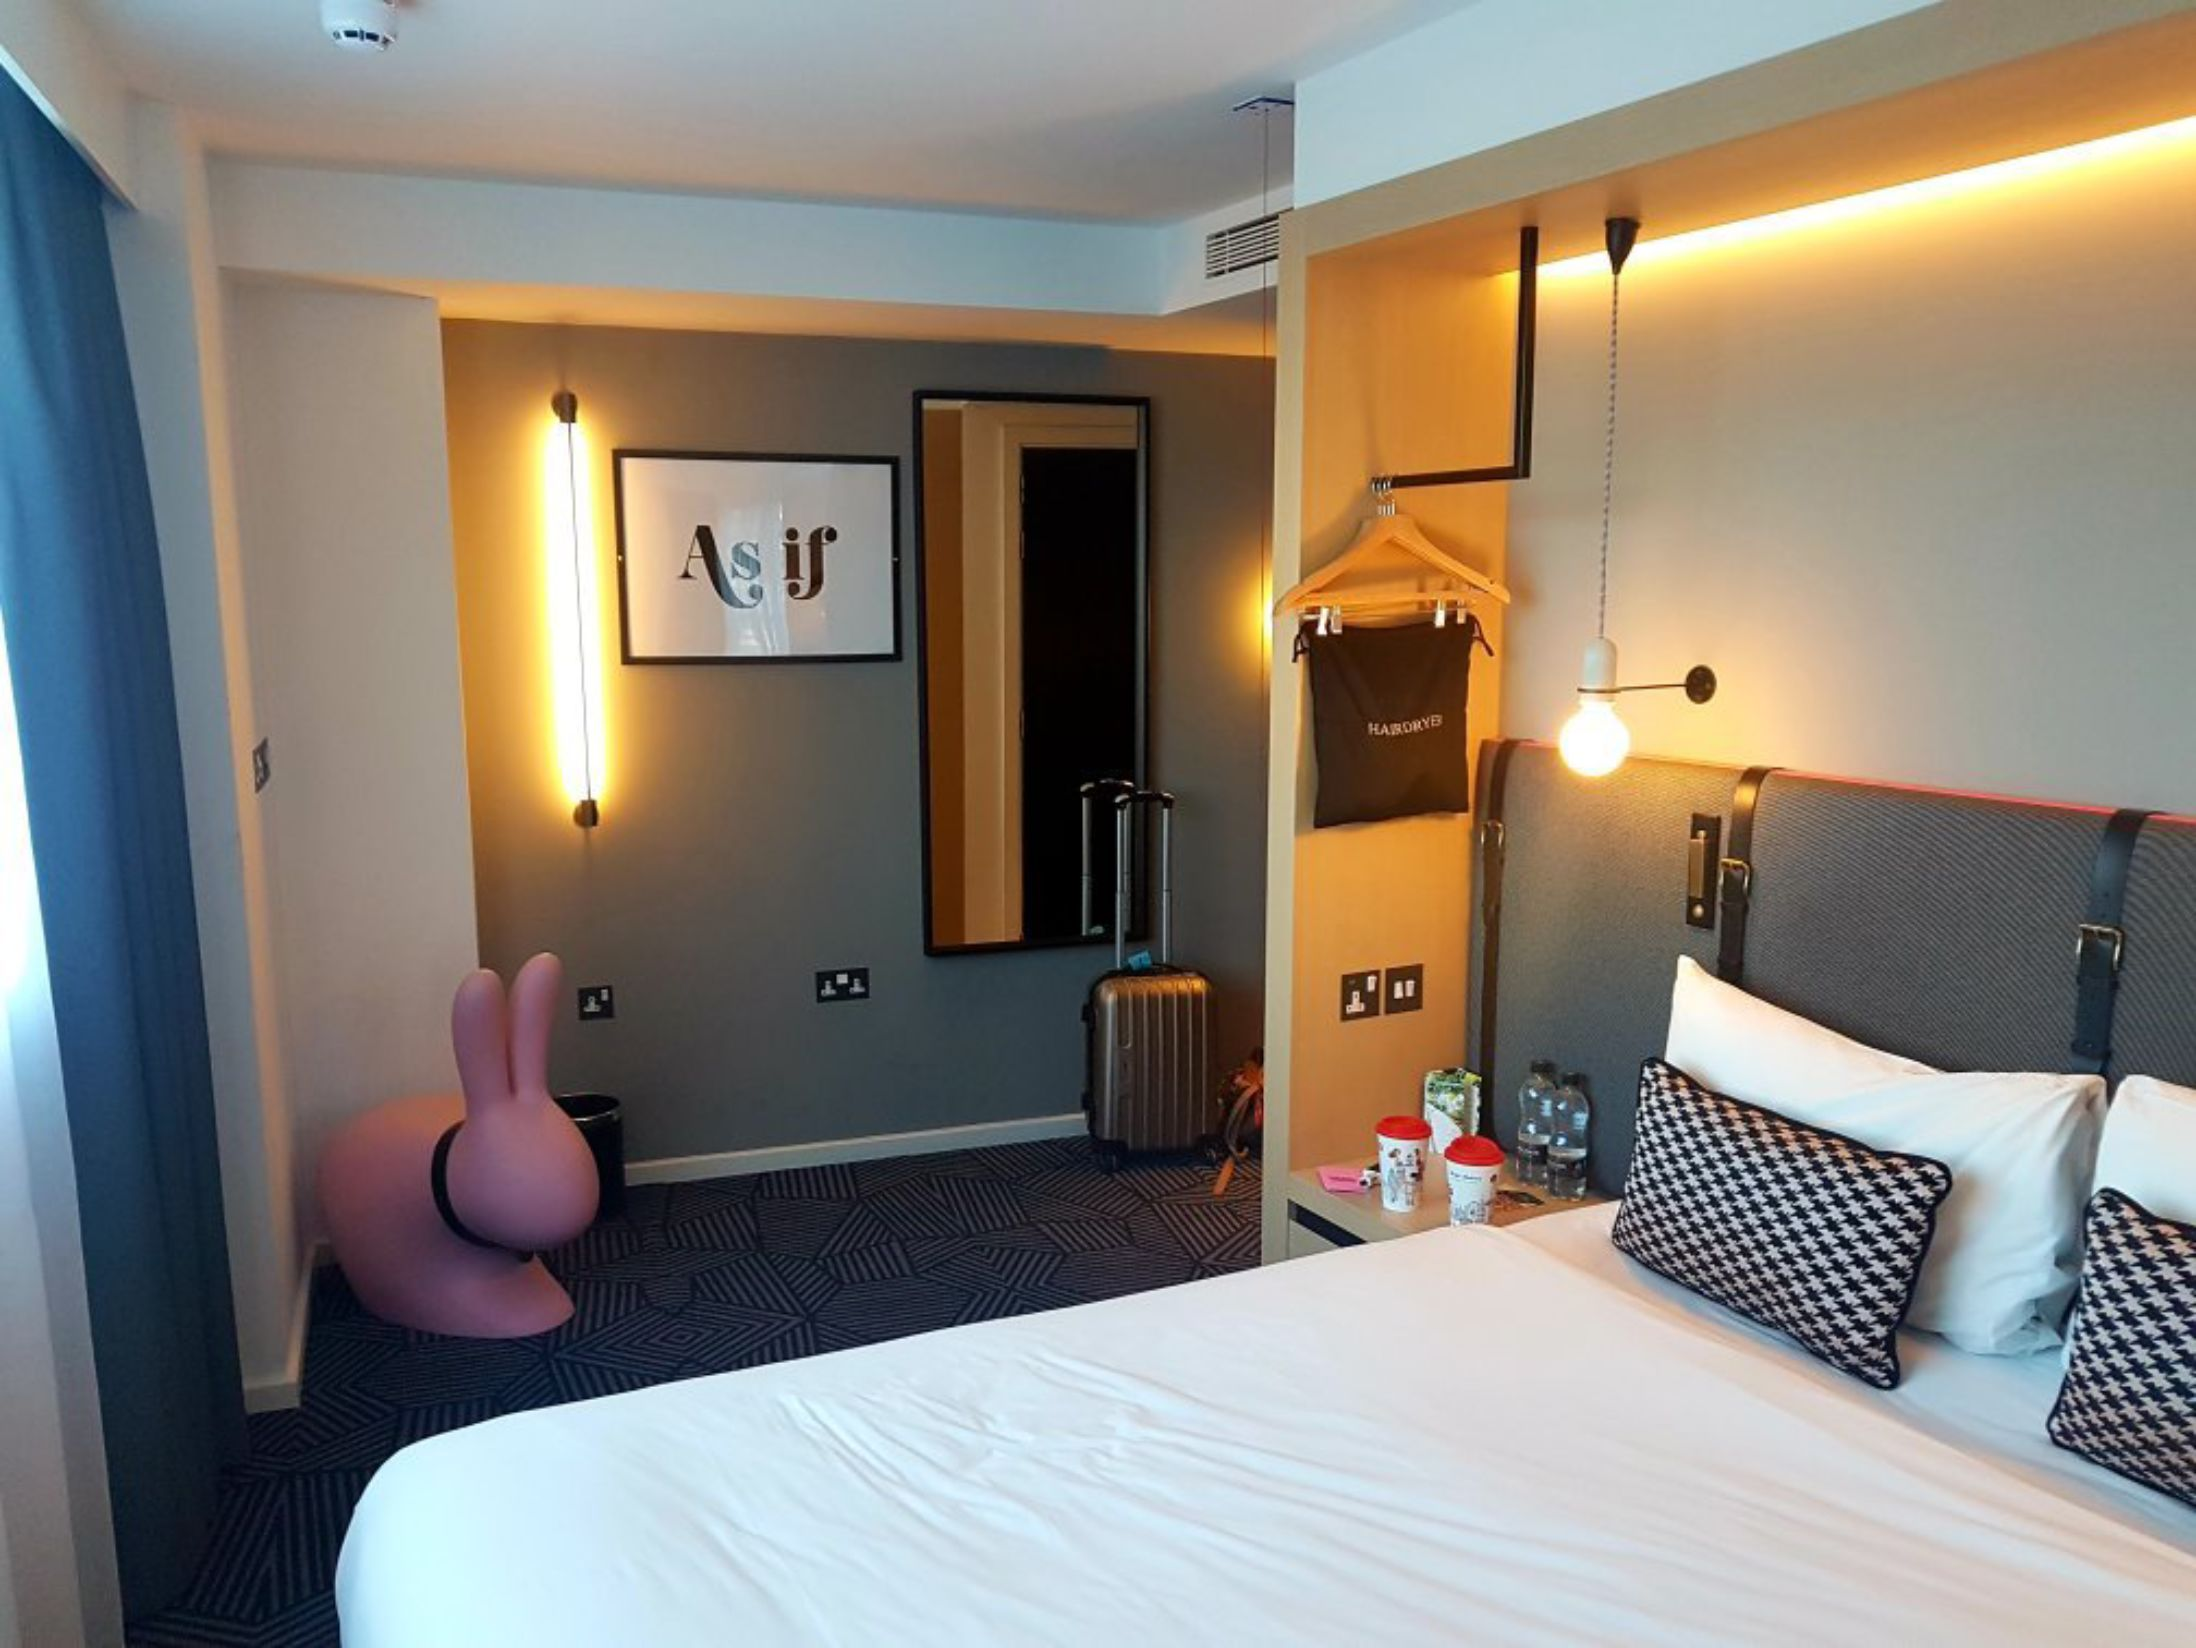 Cheap Hotels in London - Assembly Hotel London